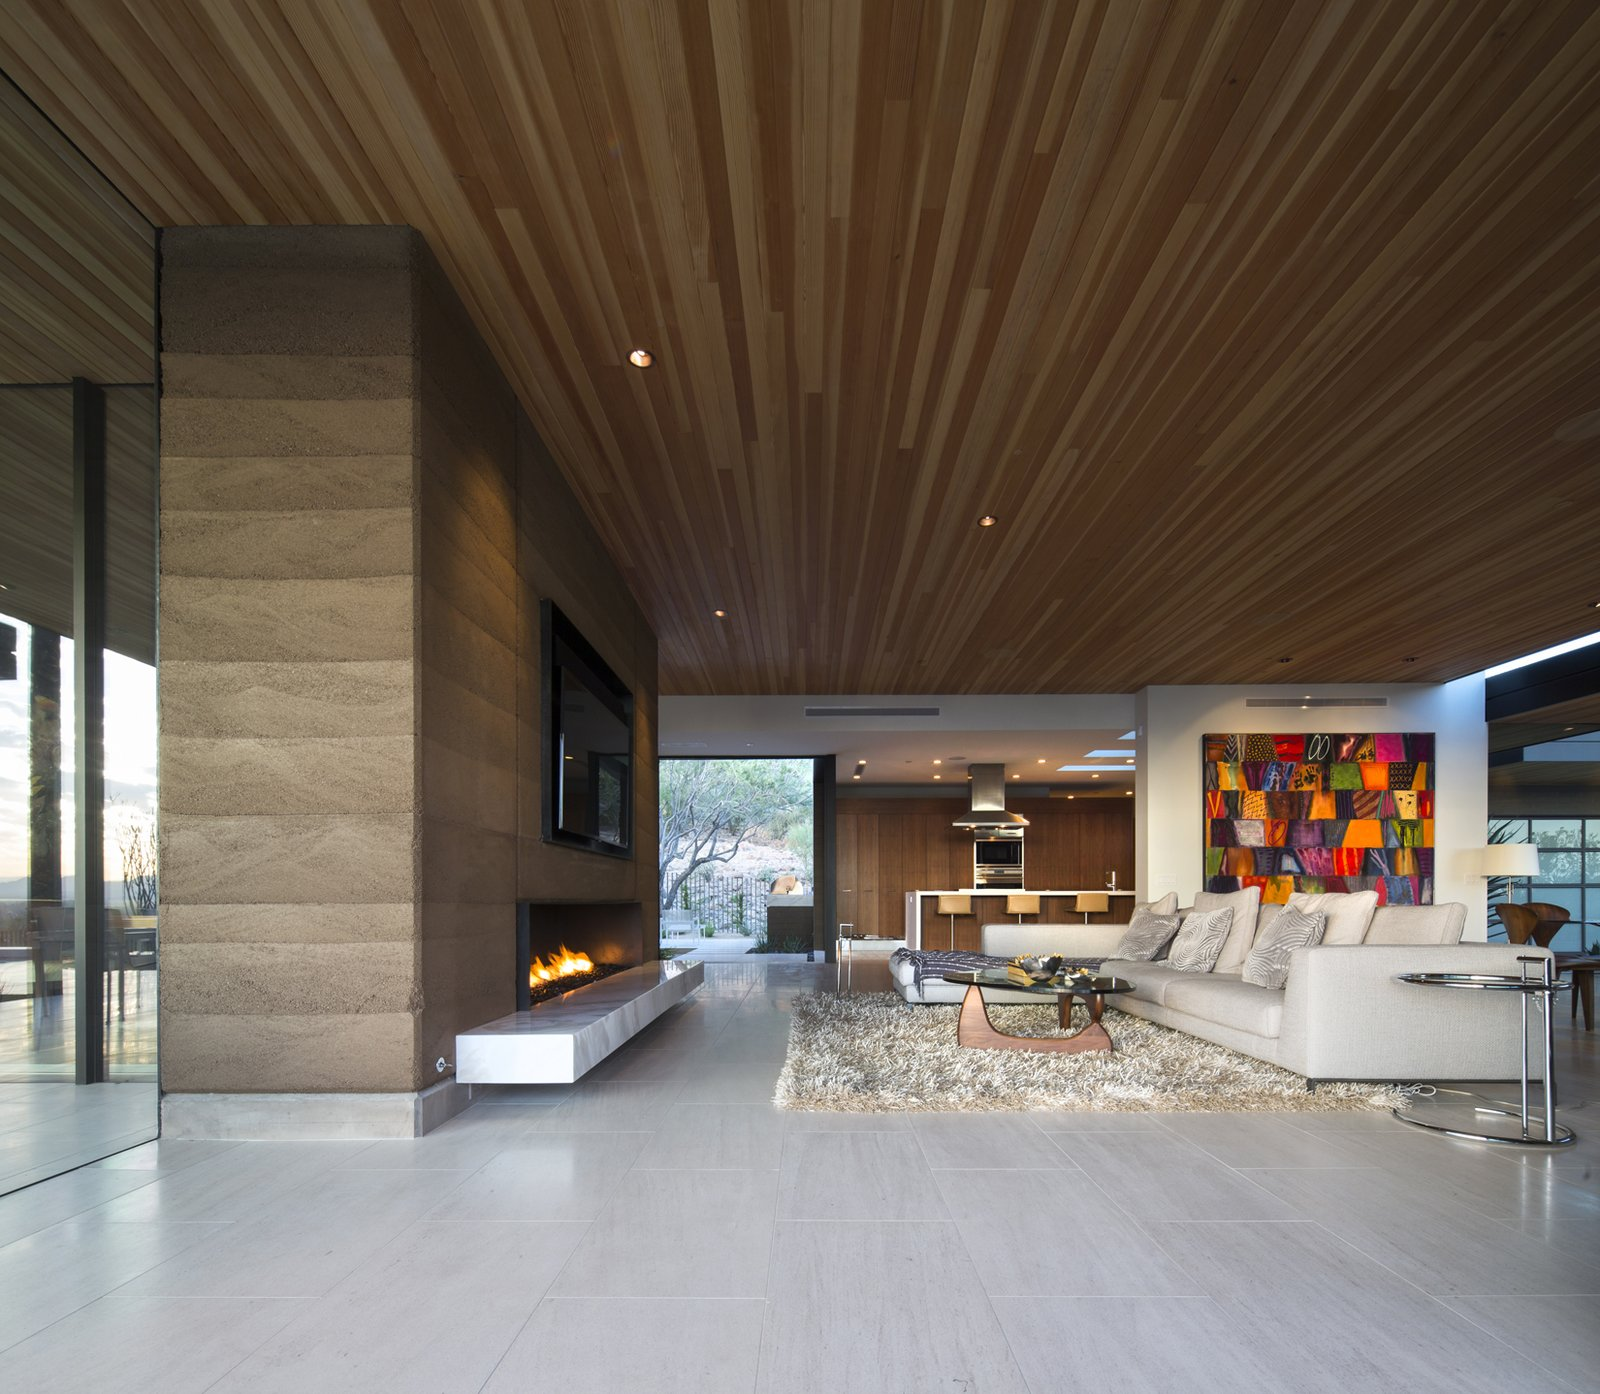 Living Room, Chair, Sofa, Sectional, Coffee Tables, Limestone Floor, Floor Lighting, Standard Layout Fireplace, End Tables, Recessed Lighting, Ribbon Fireplace, and Gas Burning Fireplace  Rammed Earth Modern